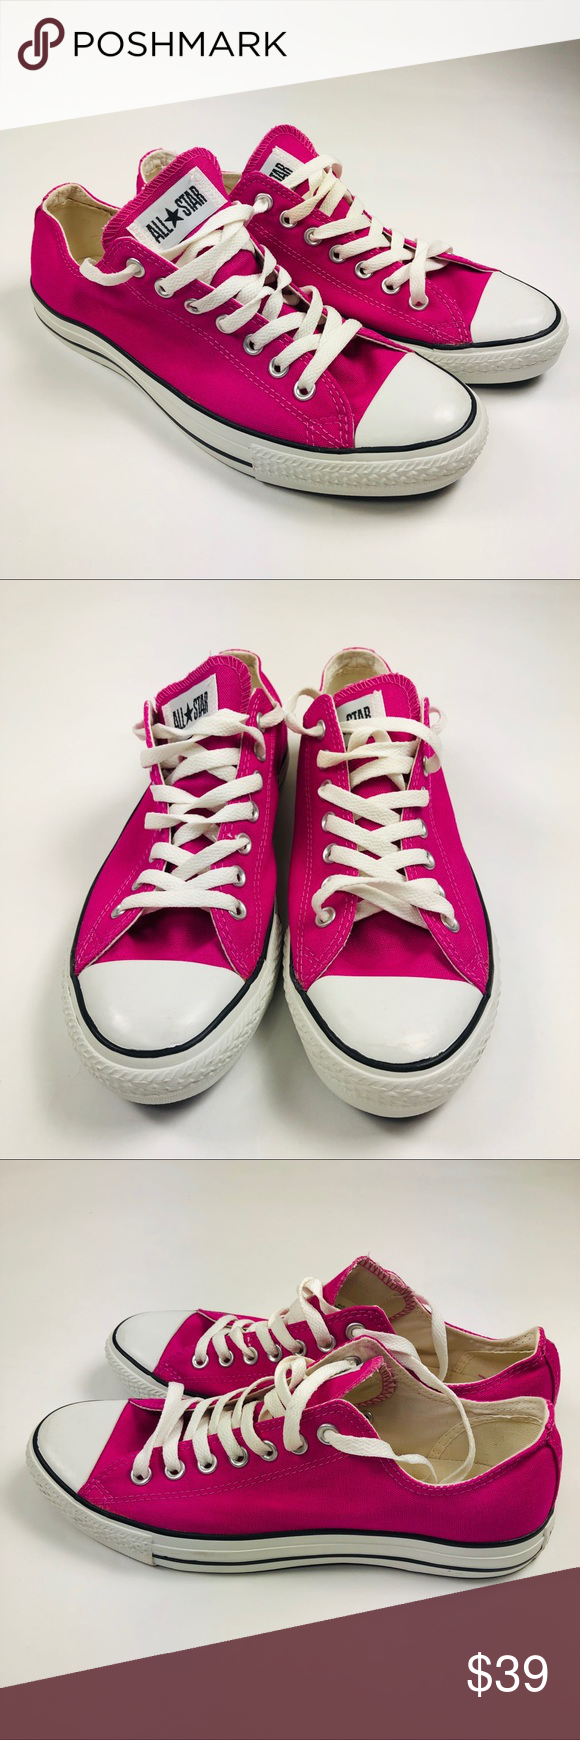 84013314def1 Converse All Star Low Sneaker Pink Men 9 Women 11 NWT in 2018